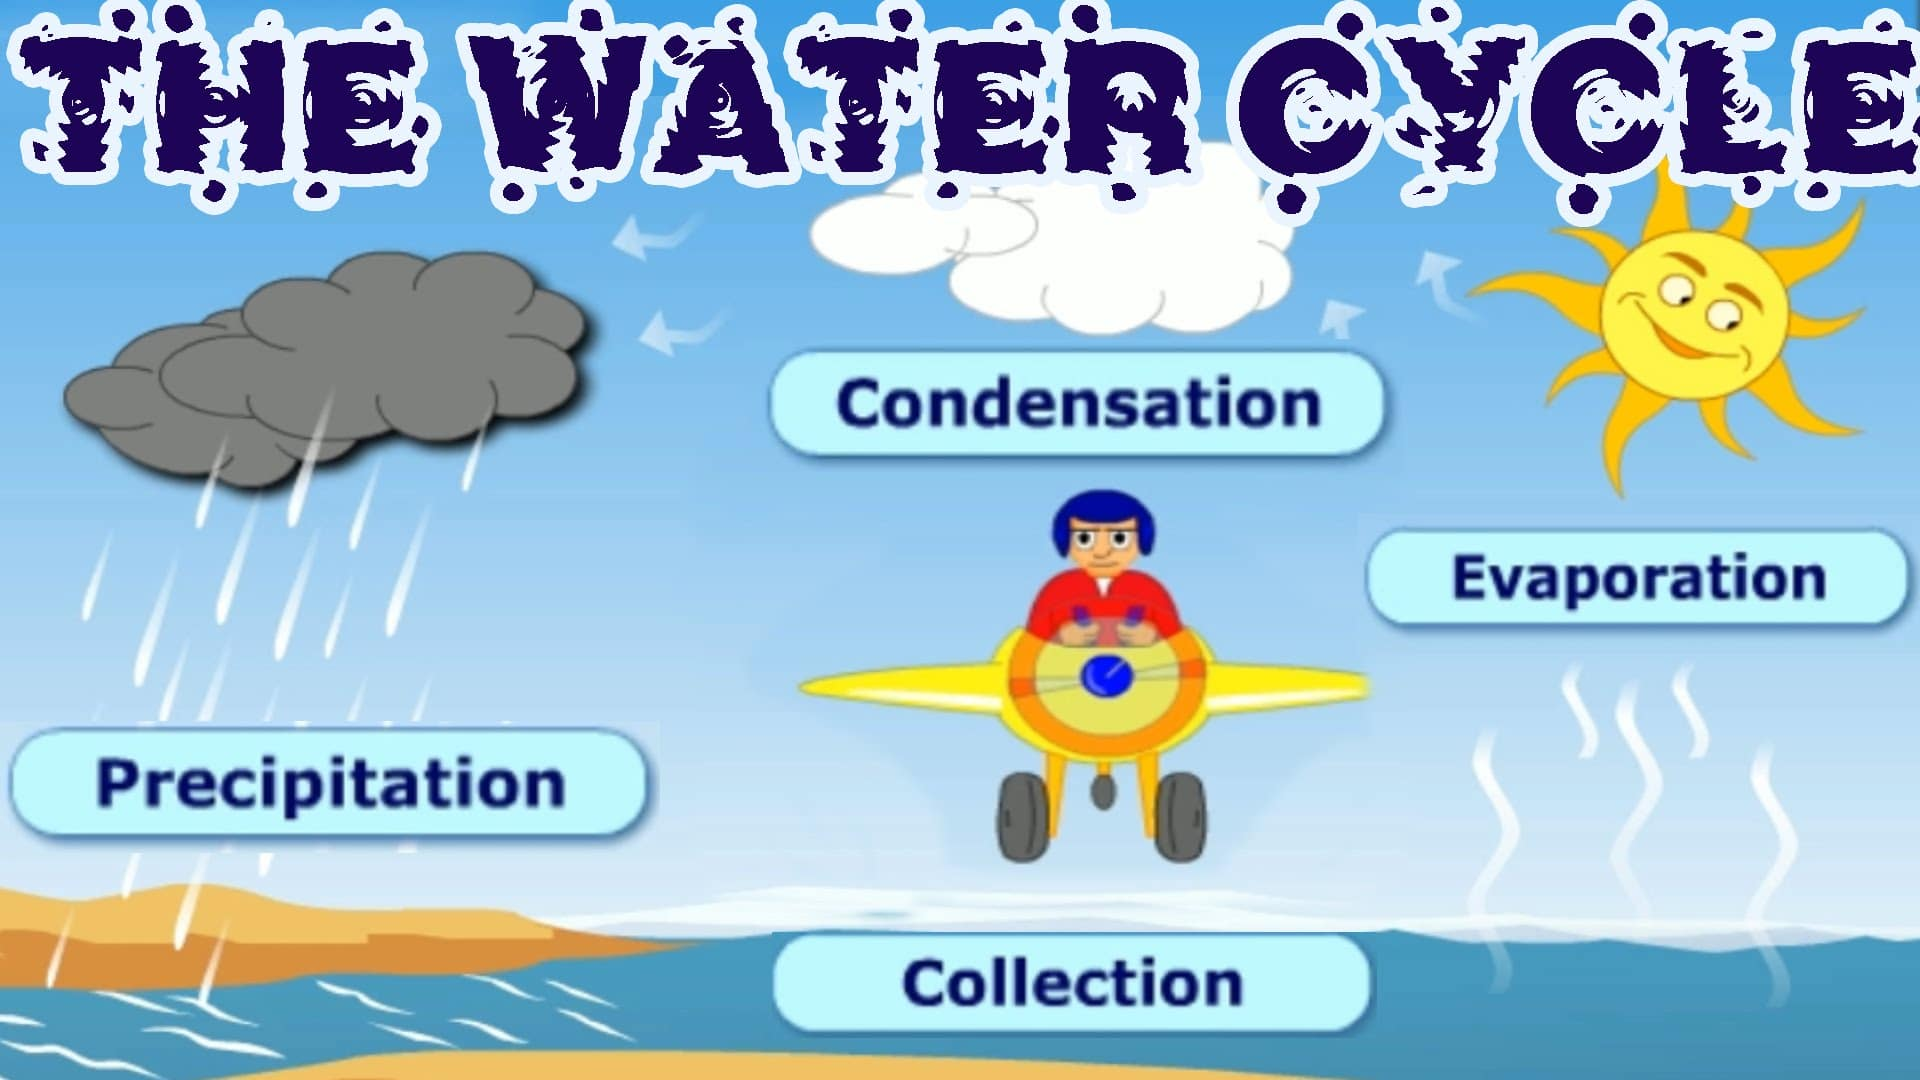 The Water Cycle Collection Condensation Precipitation